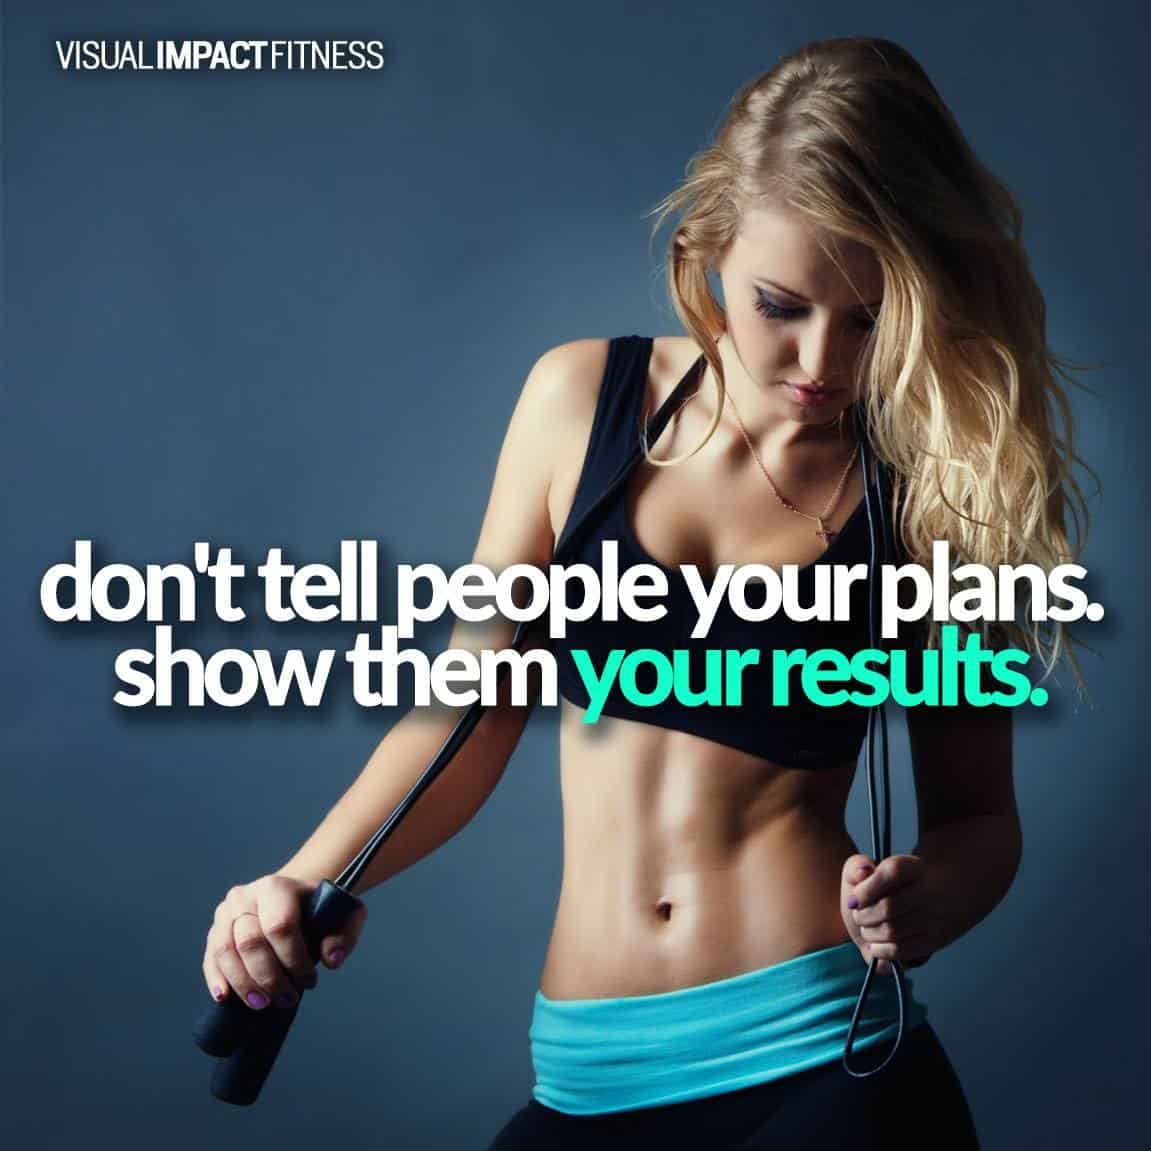 Don't tell people your plans, show them your results